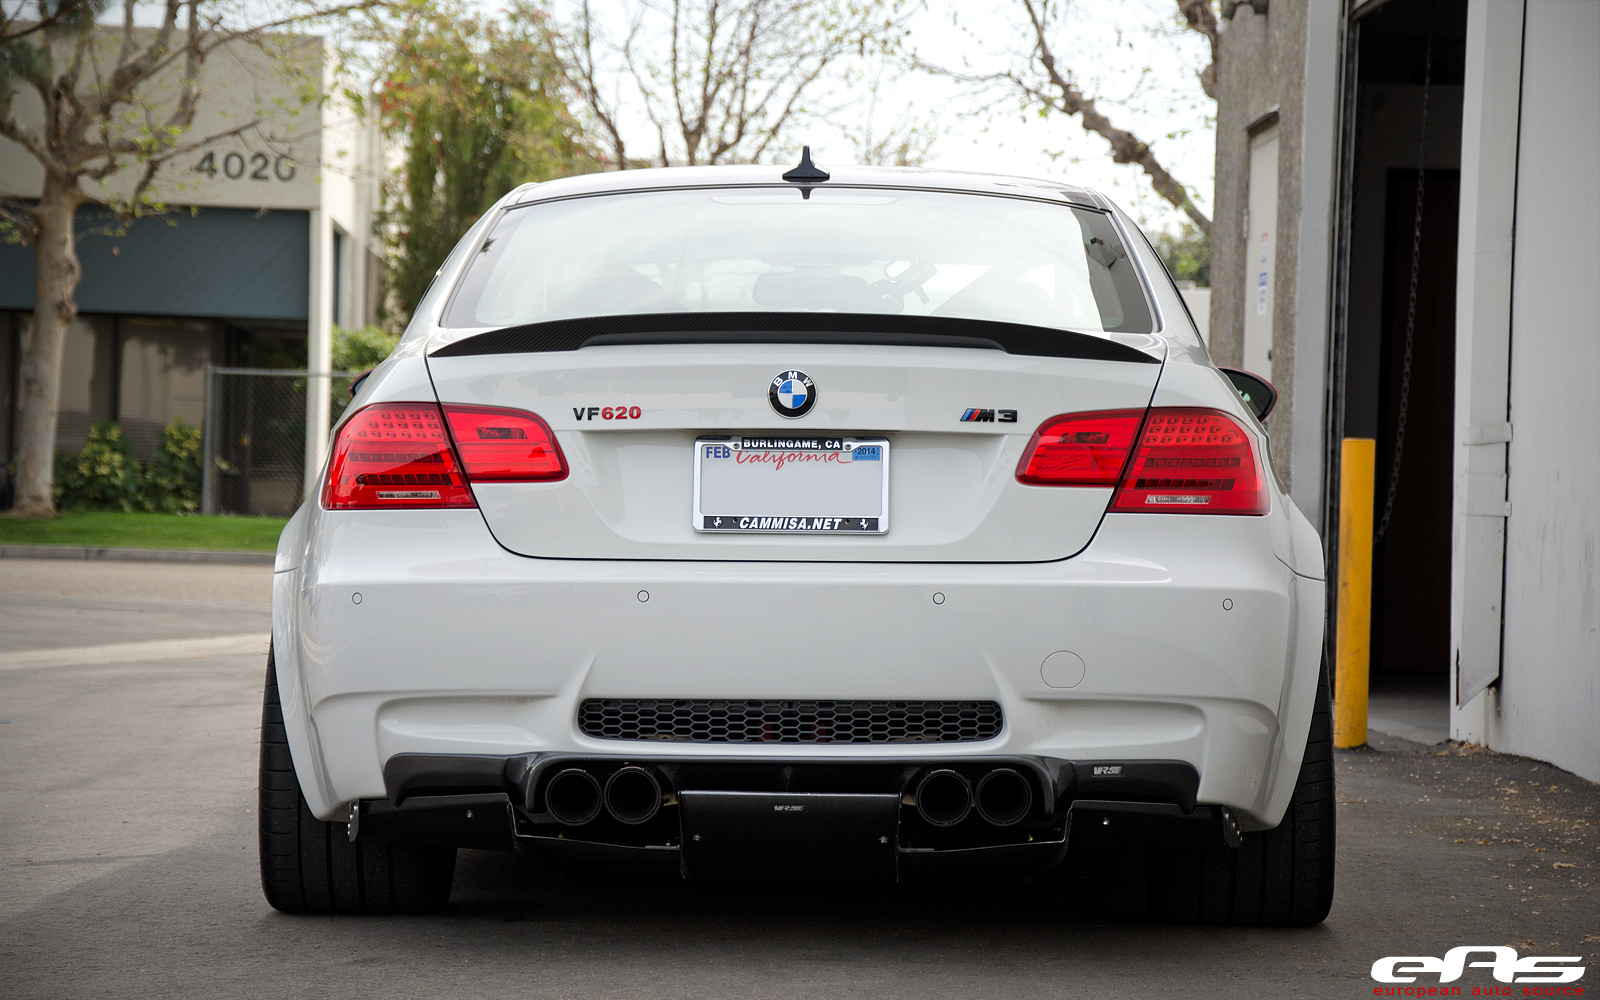 572 WHP BMW E92 M3 from EAS: Overkill? - autoevolution